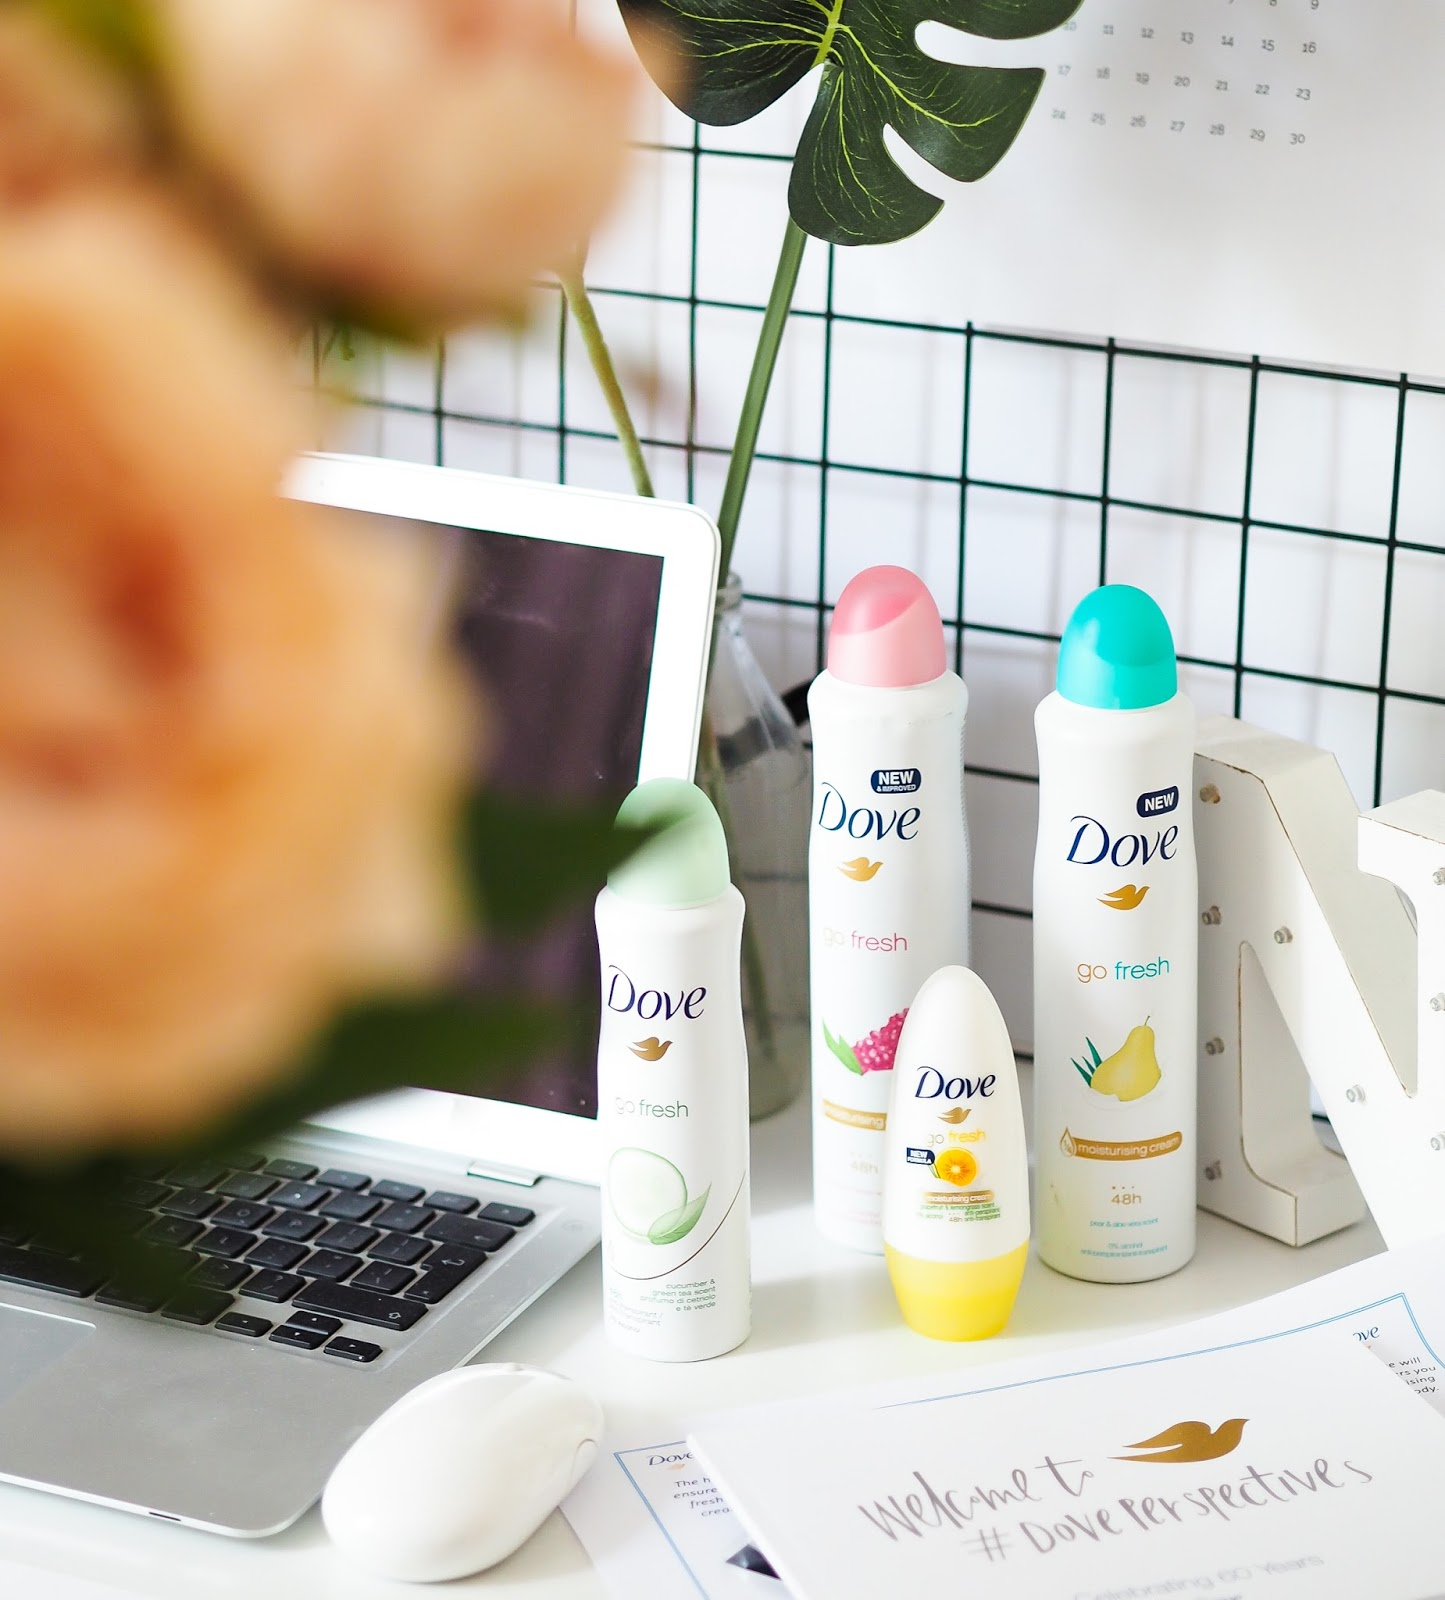 CARING FOR YOUR UNDERARMS WITH THE NEW DOVE ANTIPERSPIRANT RANGE